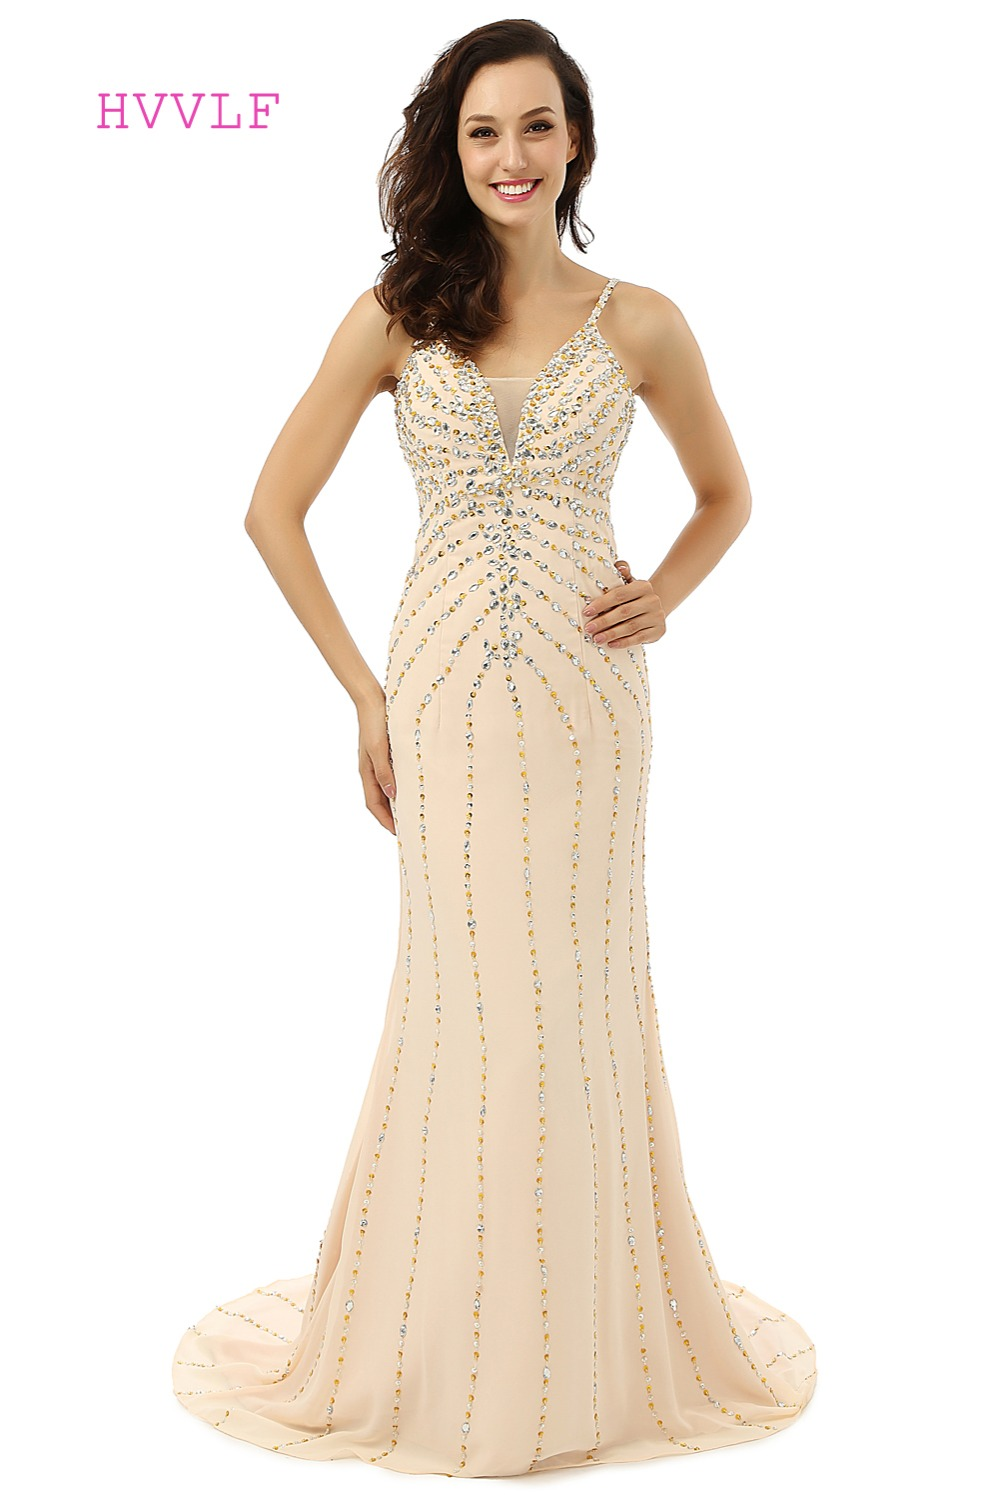 Champagne Robe De Soiree 2019 Mermaid Spaghetti Straps V-neck Beaded Crystals Sexy Long   Prom     Dresses     Prom   Gown Evening   Dresses